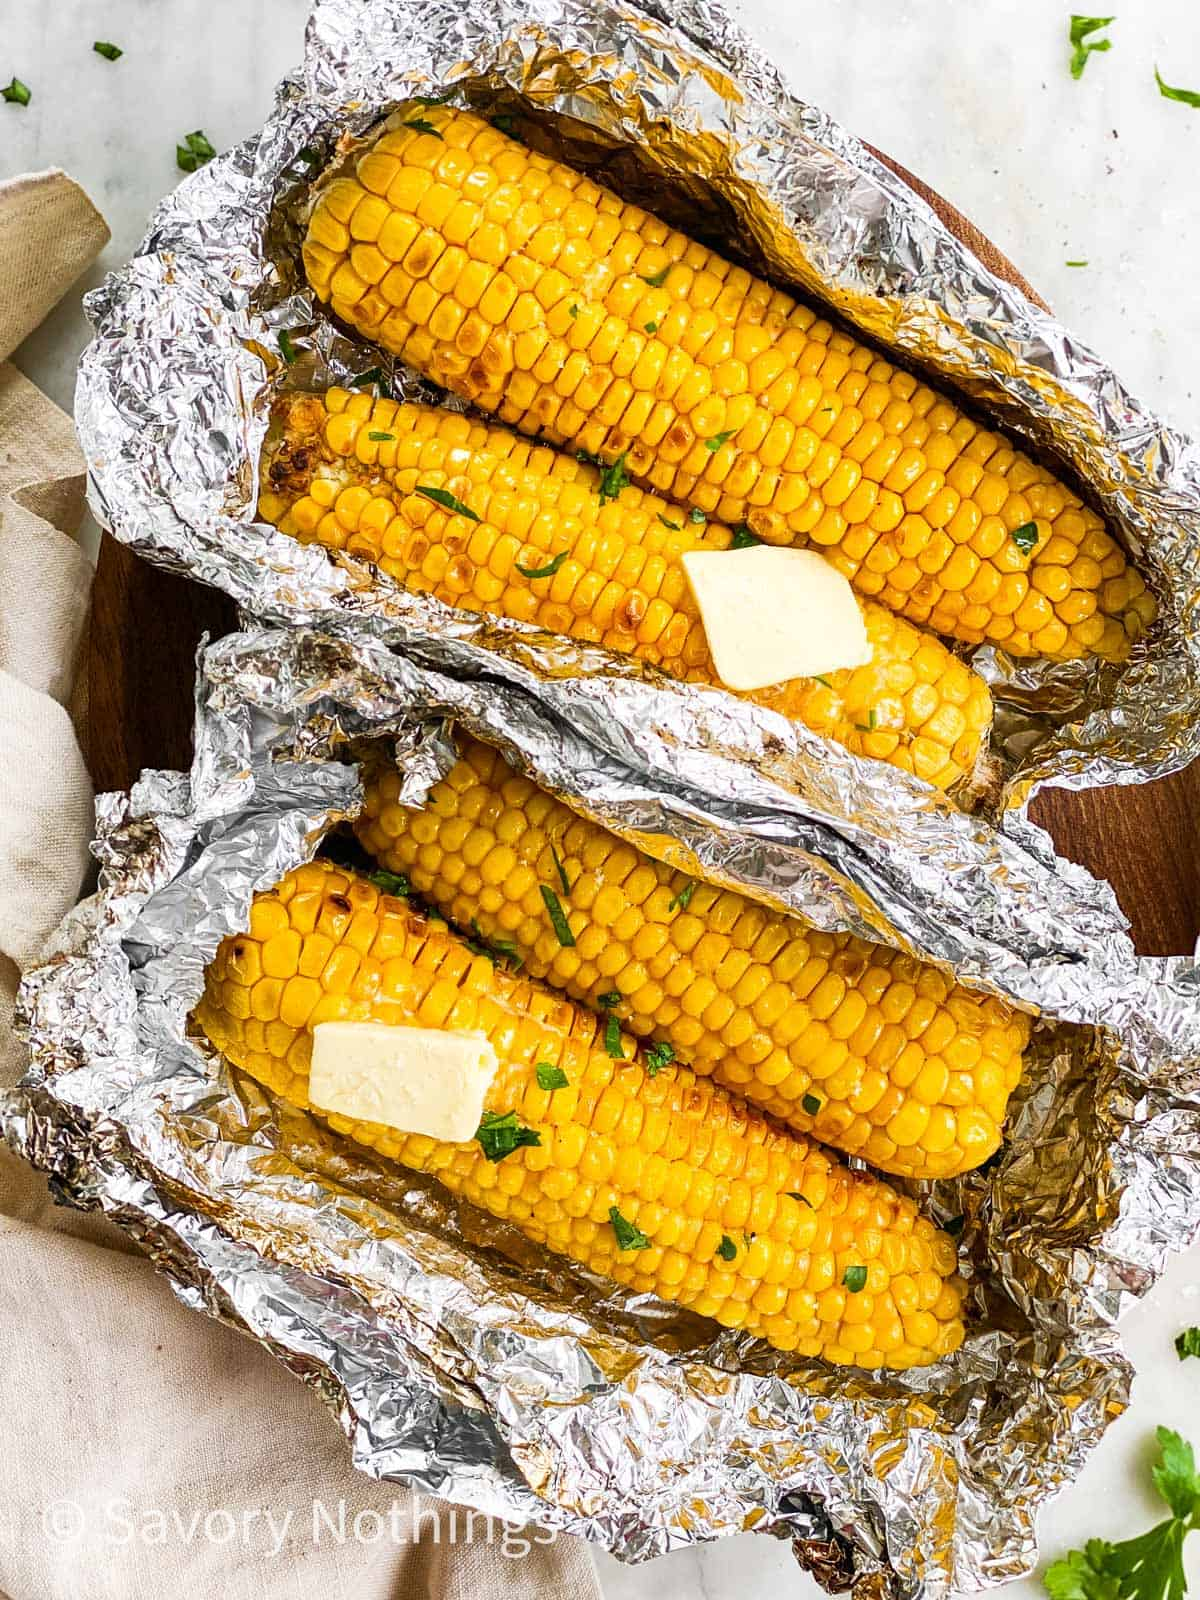 two opened foil packets with two ears of grilled corn each on wooden platter